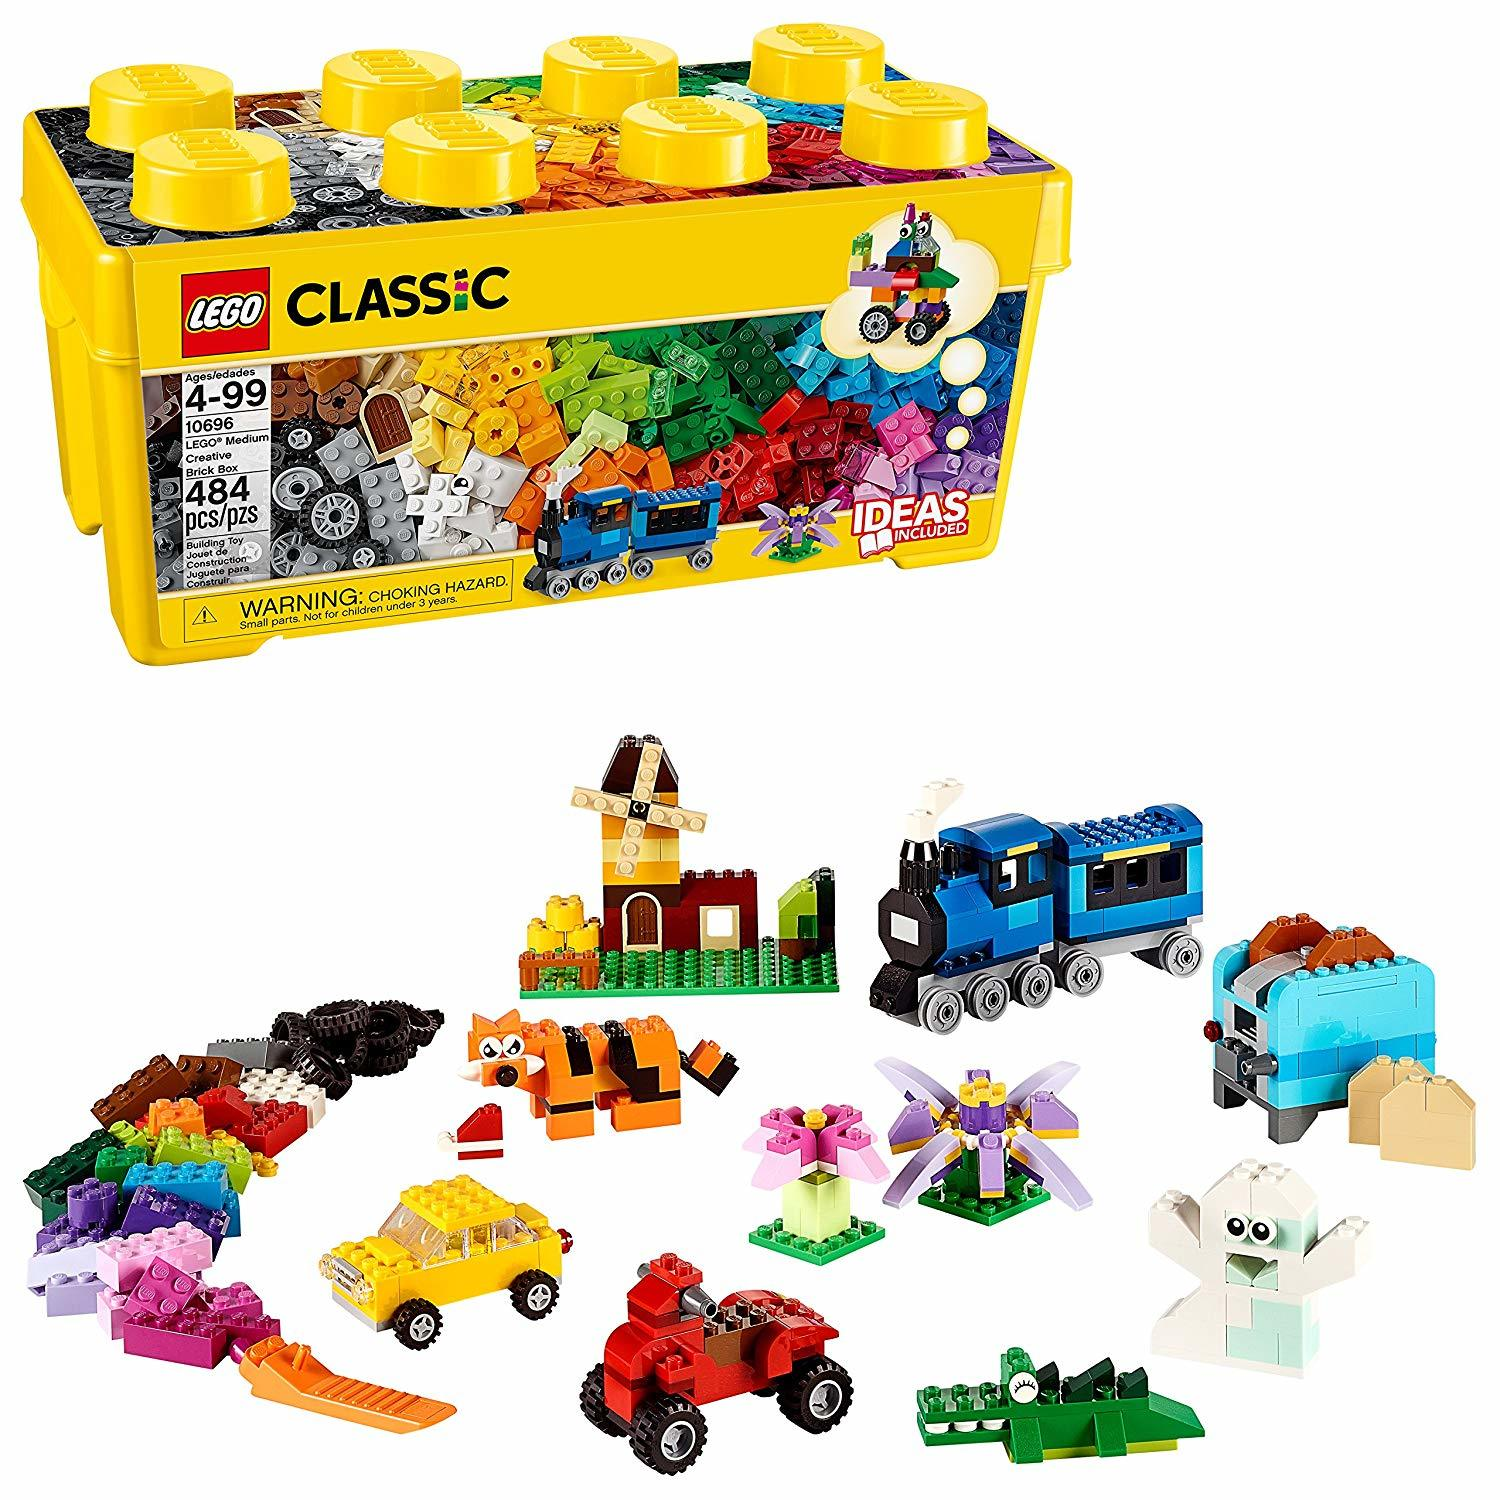 LEGO Classic: Medium Creative Brick Box (10696) image